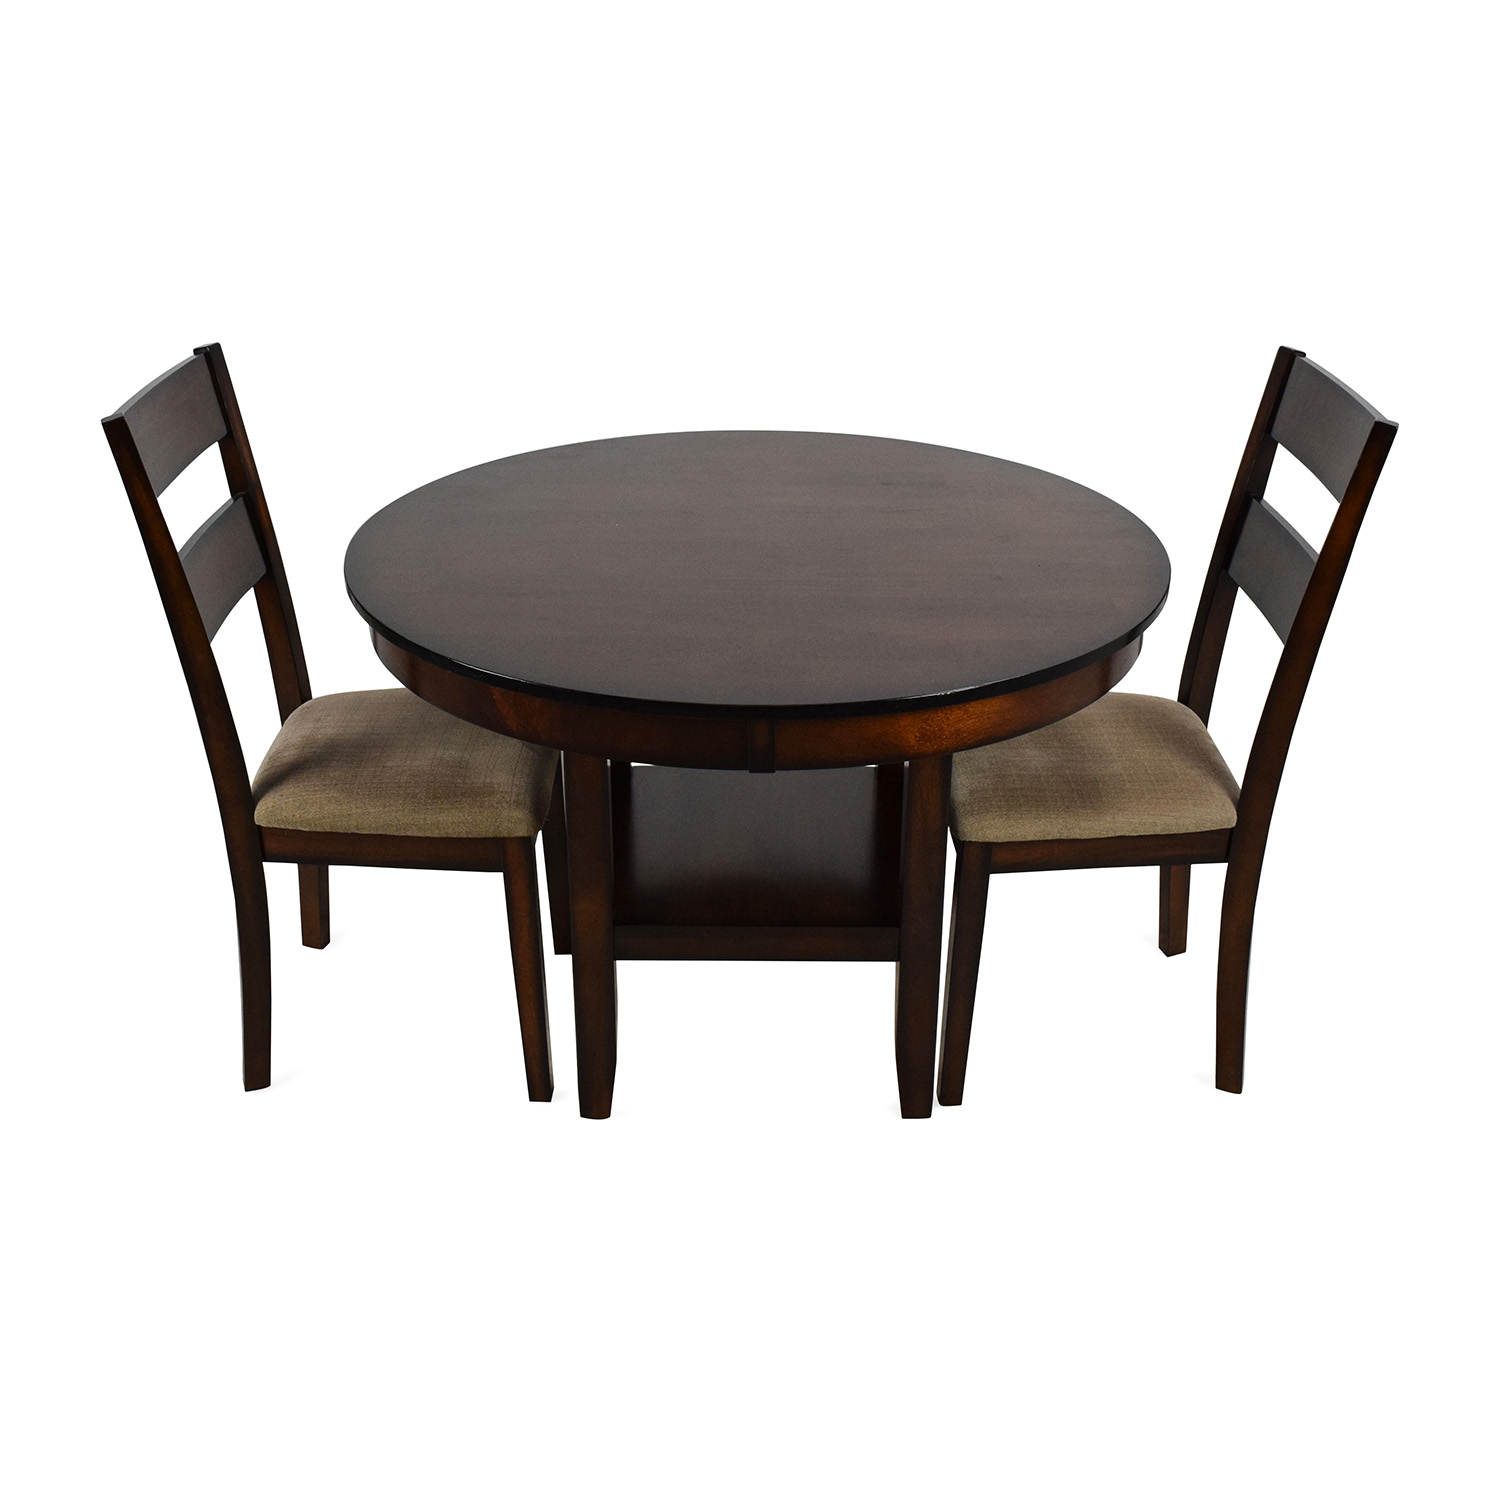 ... Buy Macyu0027s Branton 3 Piece Dining Room Collection Macyu0027s ...